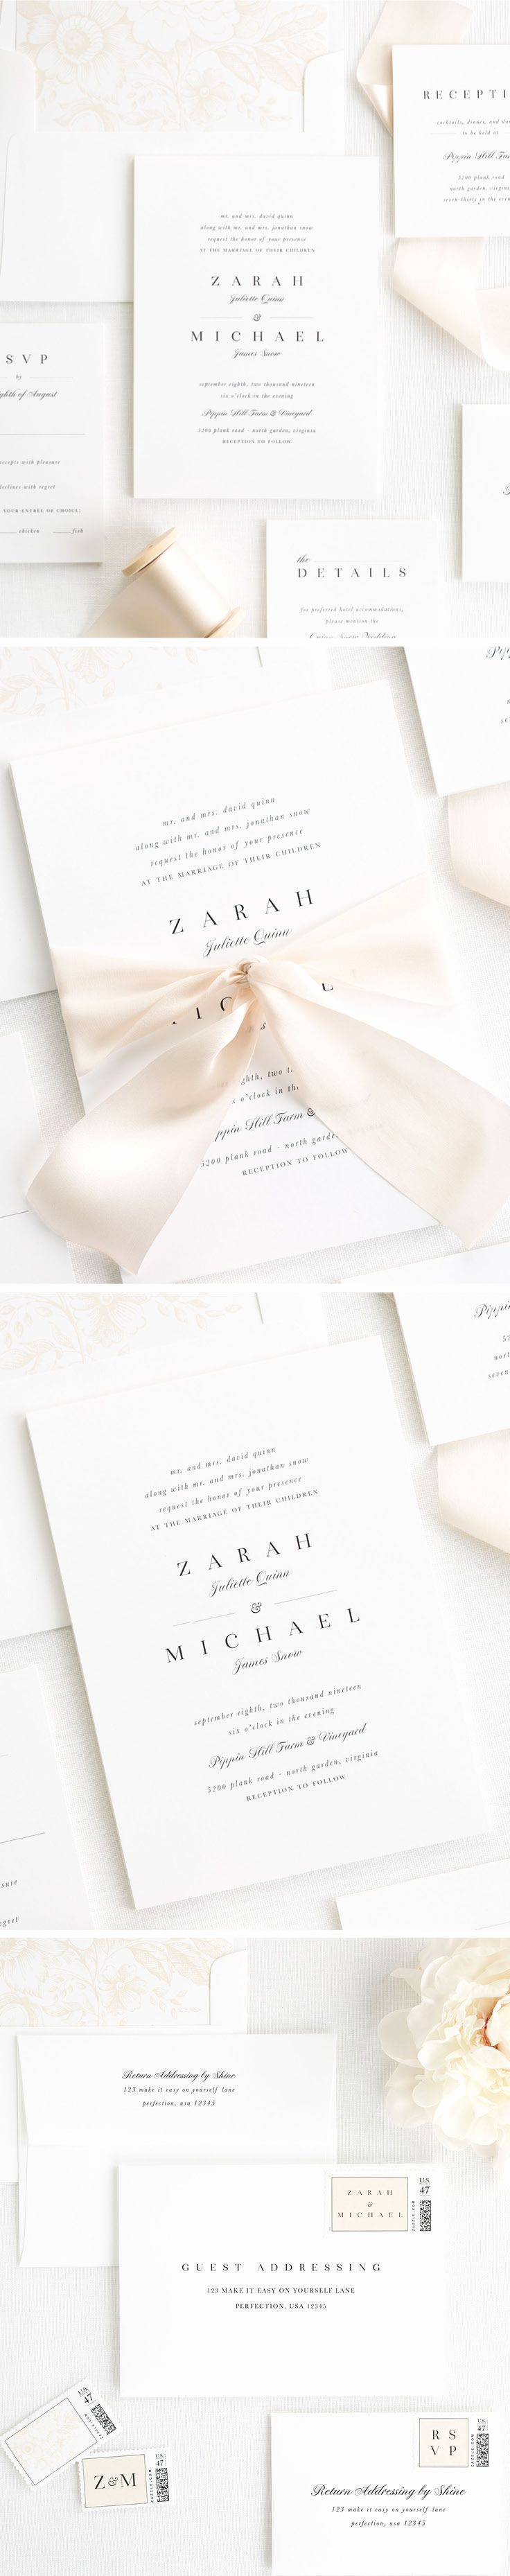 Unique Wedding Invitation Idea Awesome Best 25 Unique Wedding Invitations Ideas On Pinterest